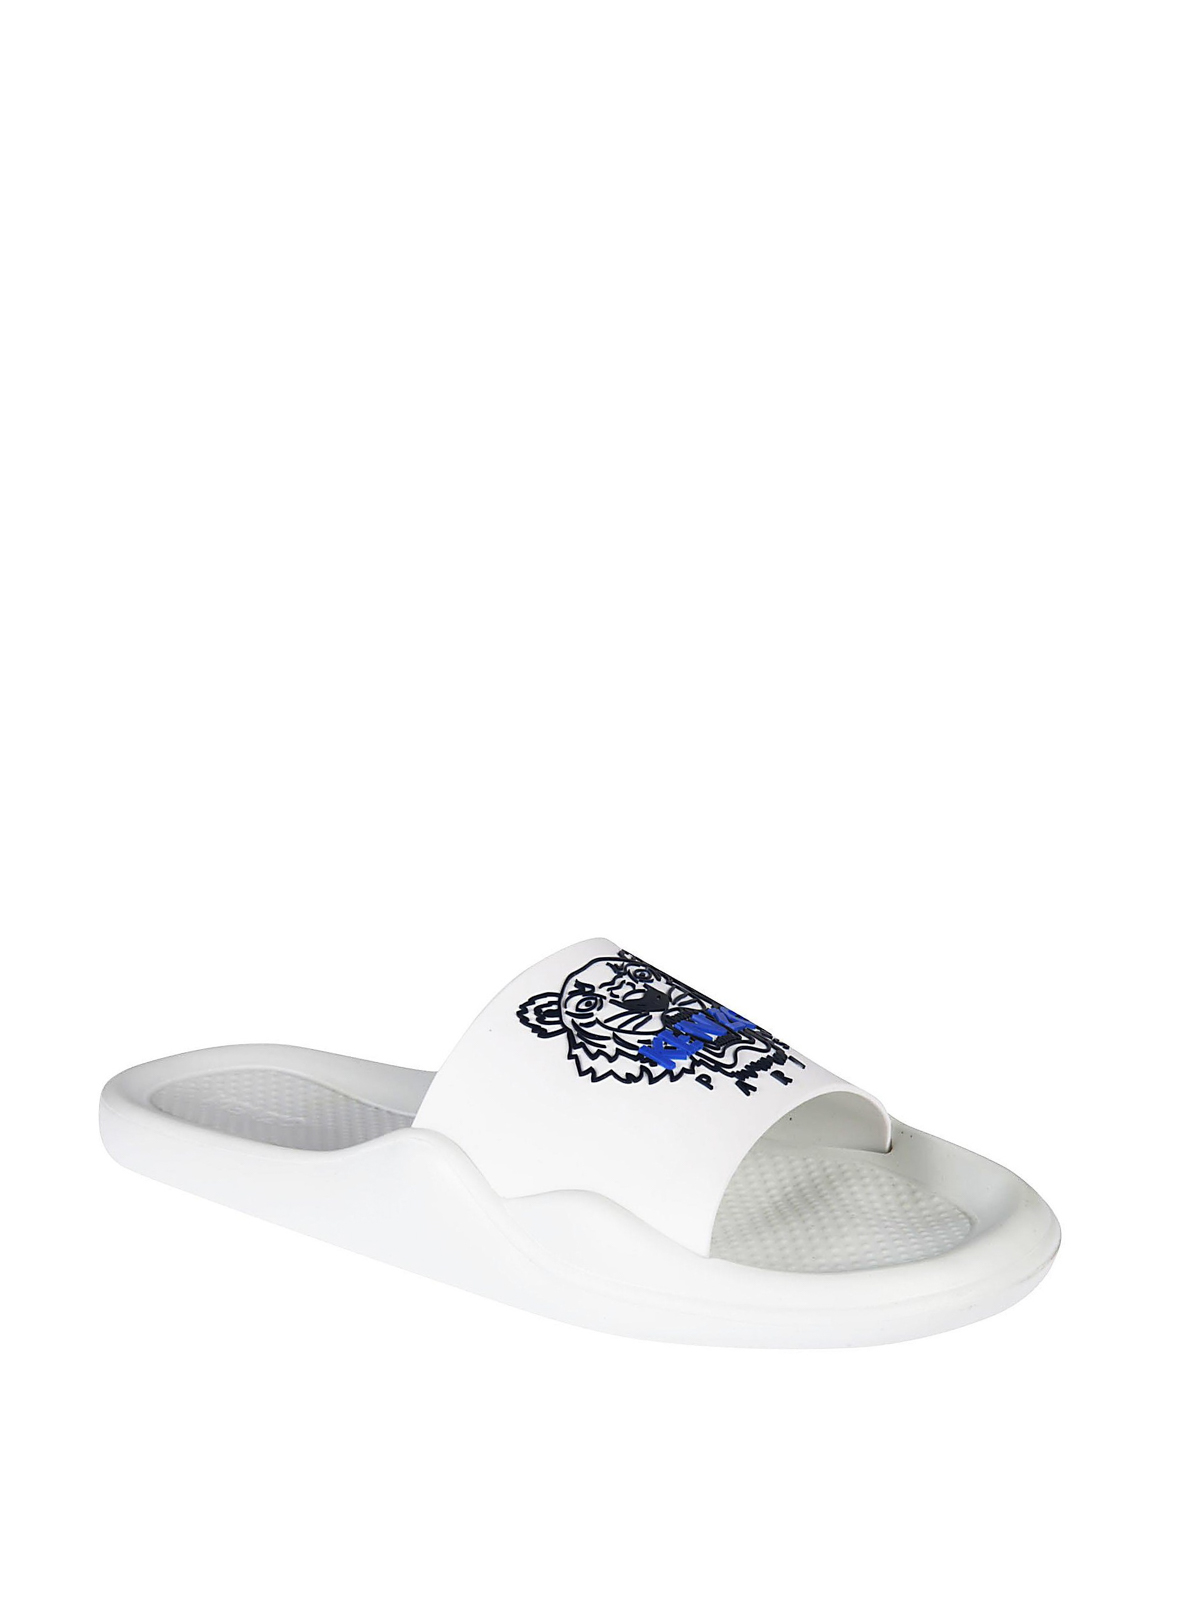 a3a0c6f85123 Kenzo - Tiger rubber slide sandals - sandals - F855SD104P71 01 ...